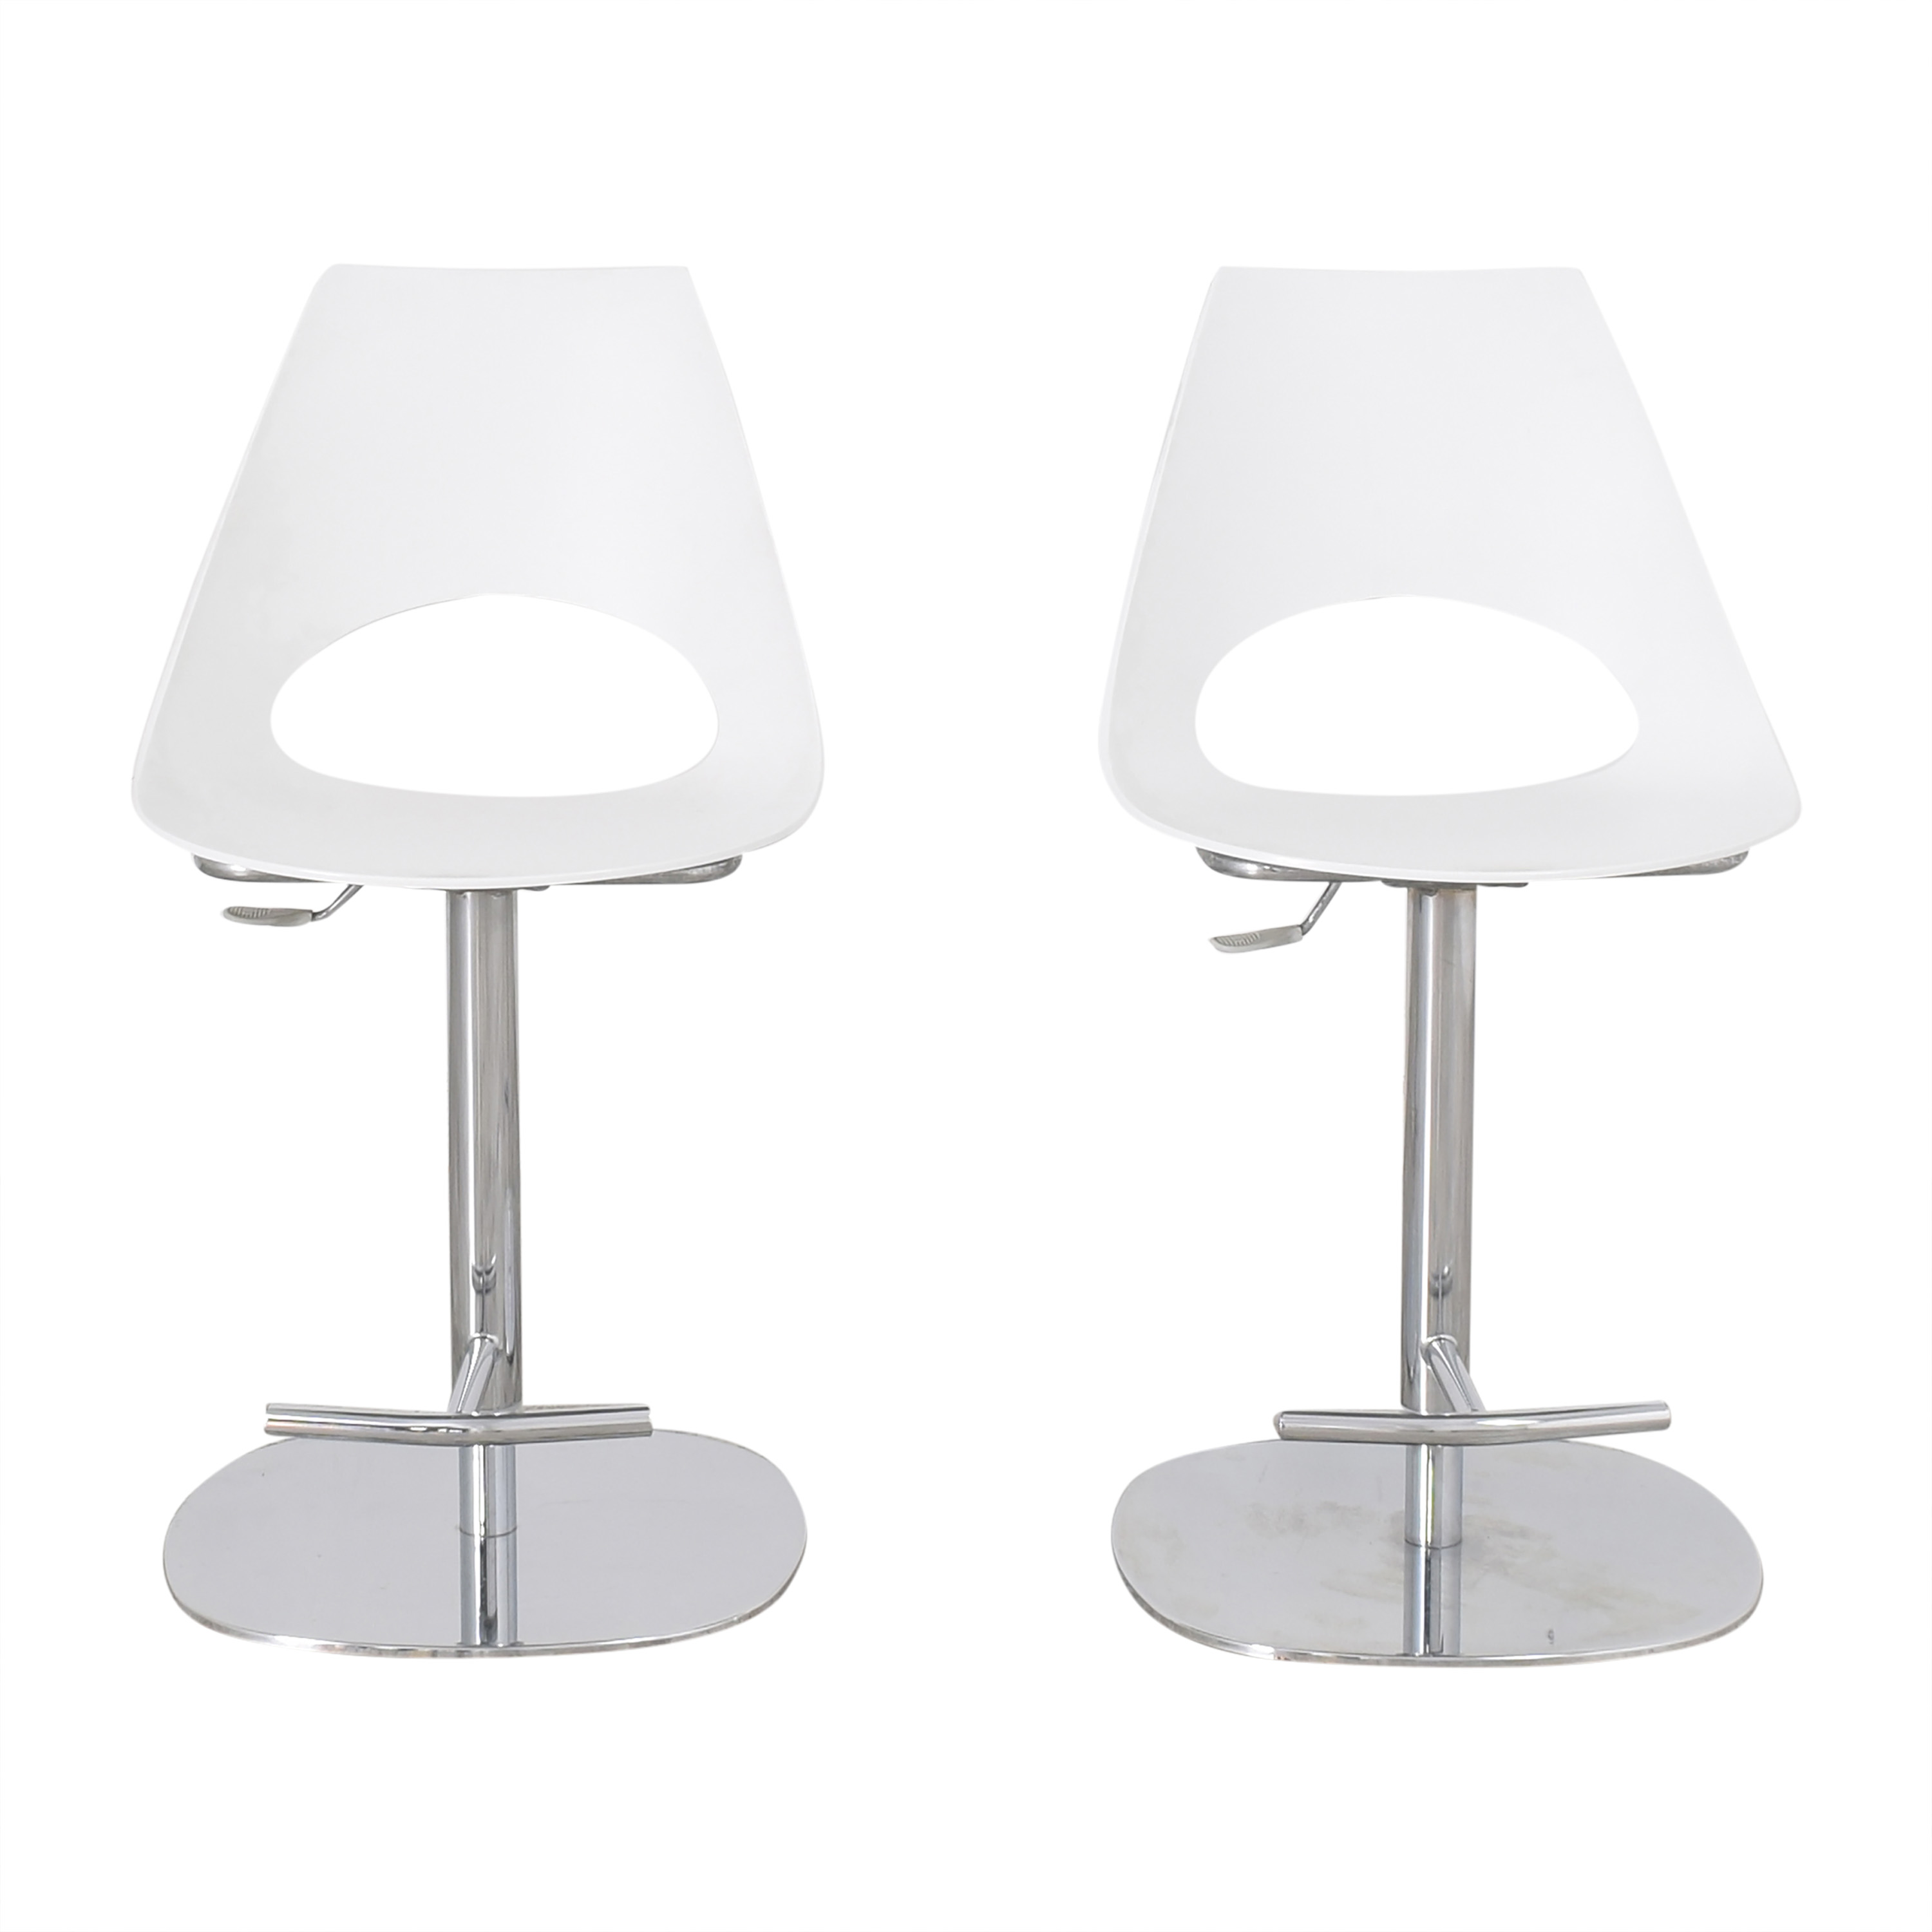 Bontempi Shark Adjustable Swivel Bar Stools / Stools